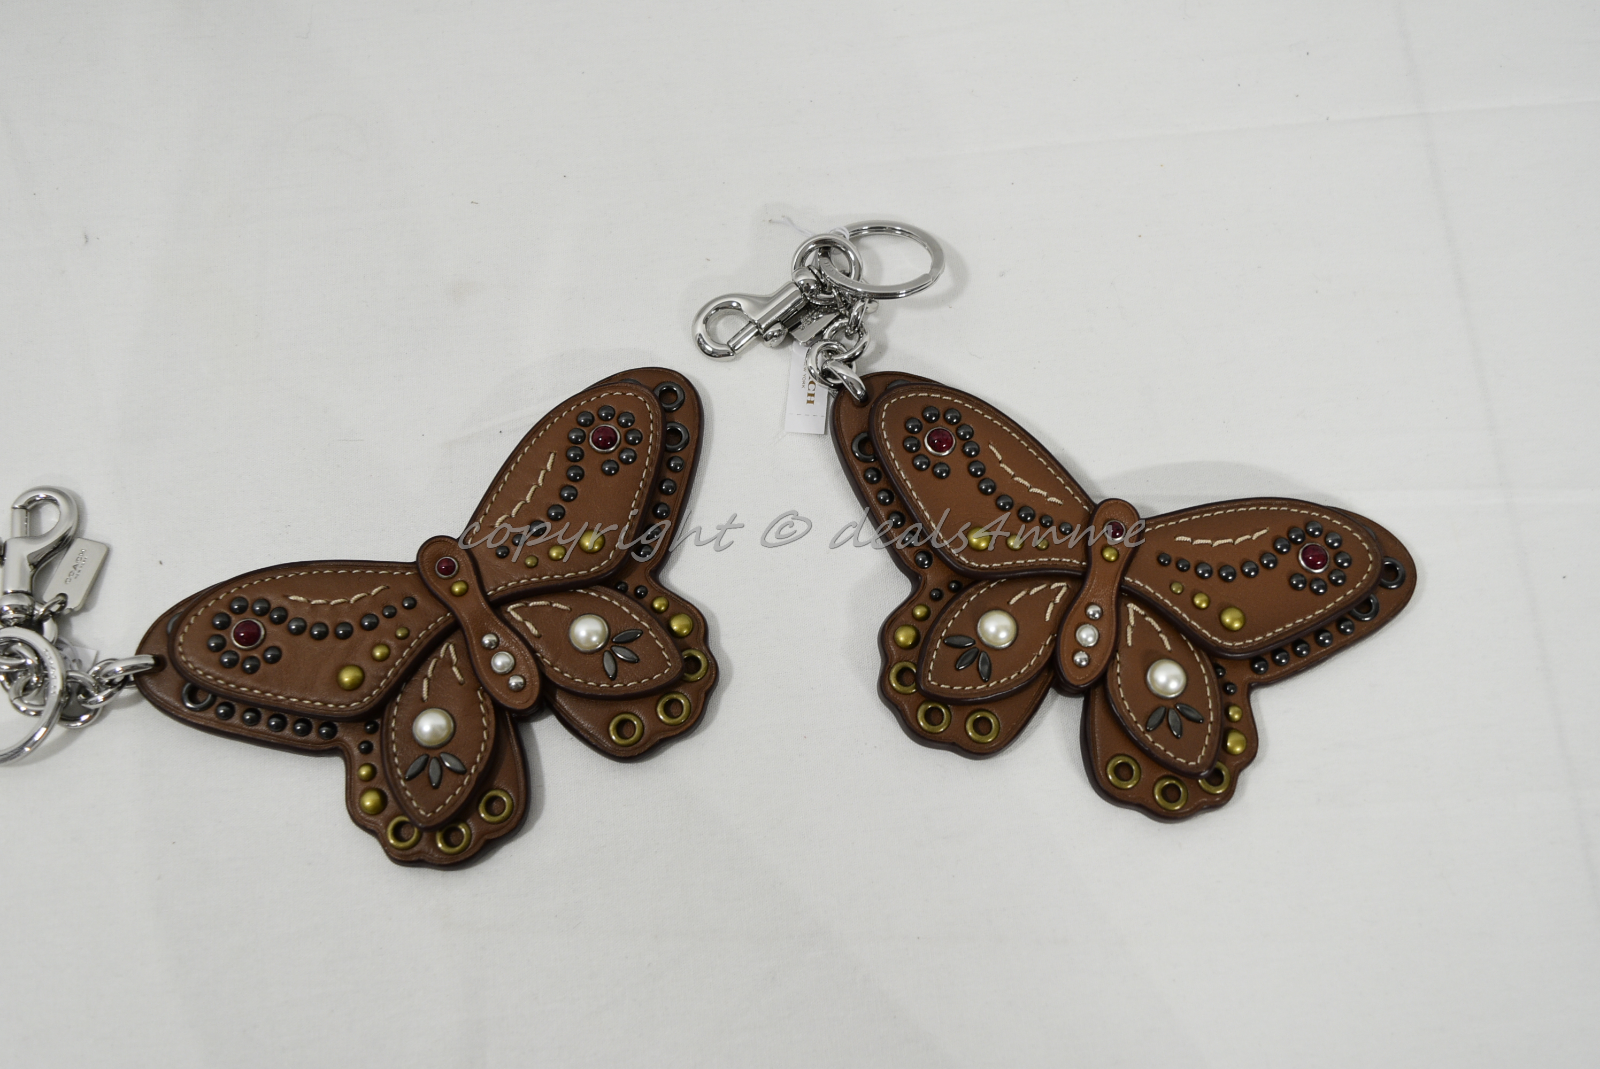 Coach F58996 /F58997 Studded Leather Butterfly Keyring/Key-Clip/ Bag Charm Brown image 3